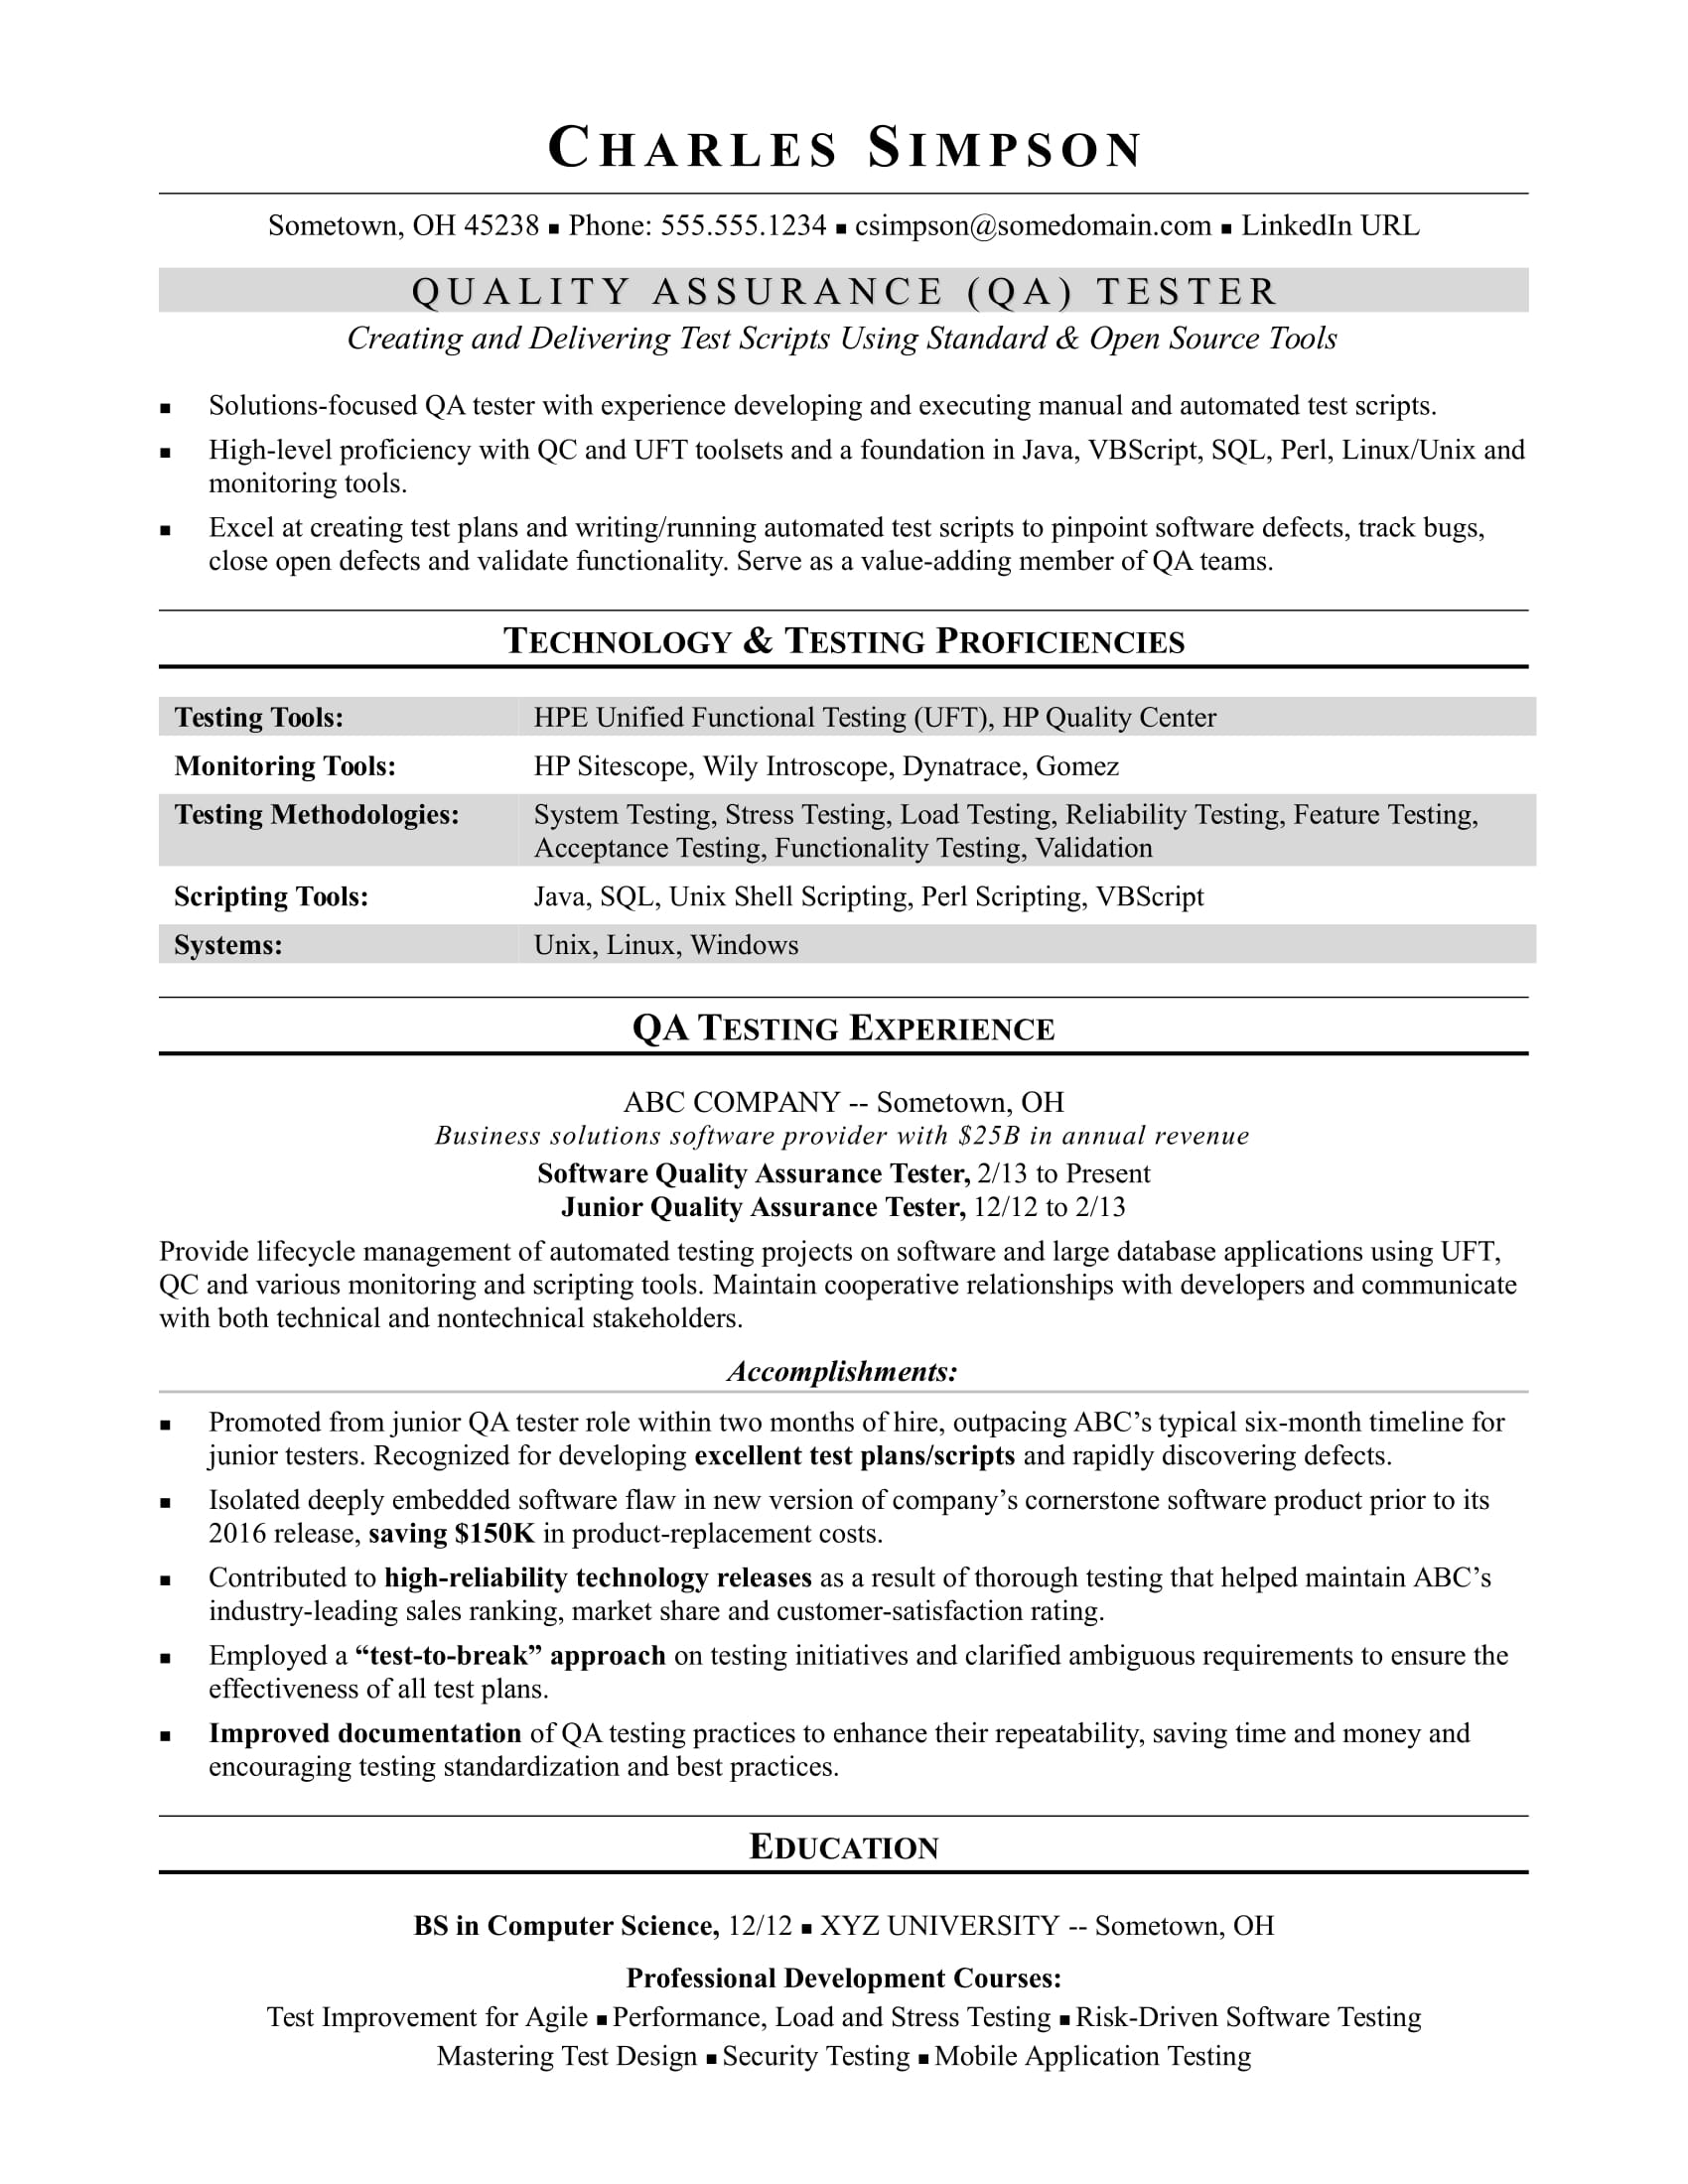 sample resume for midlevel qa software tester monster automation custodian objective Resume Automation Tester Resume